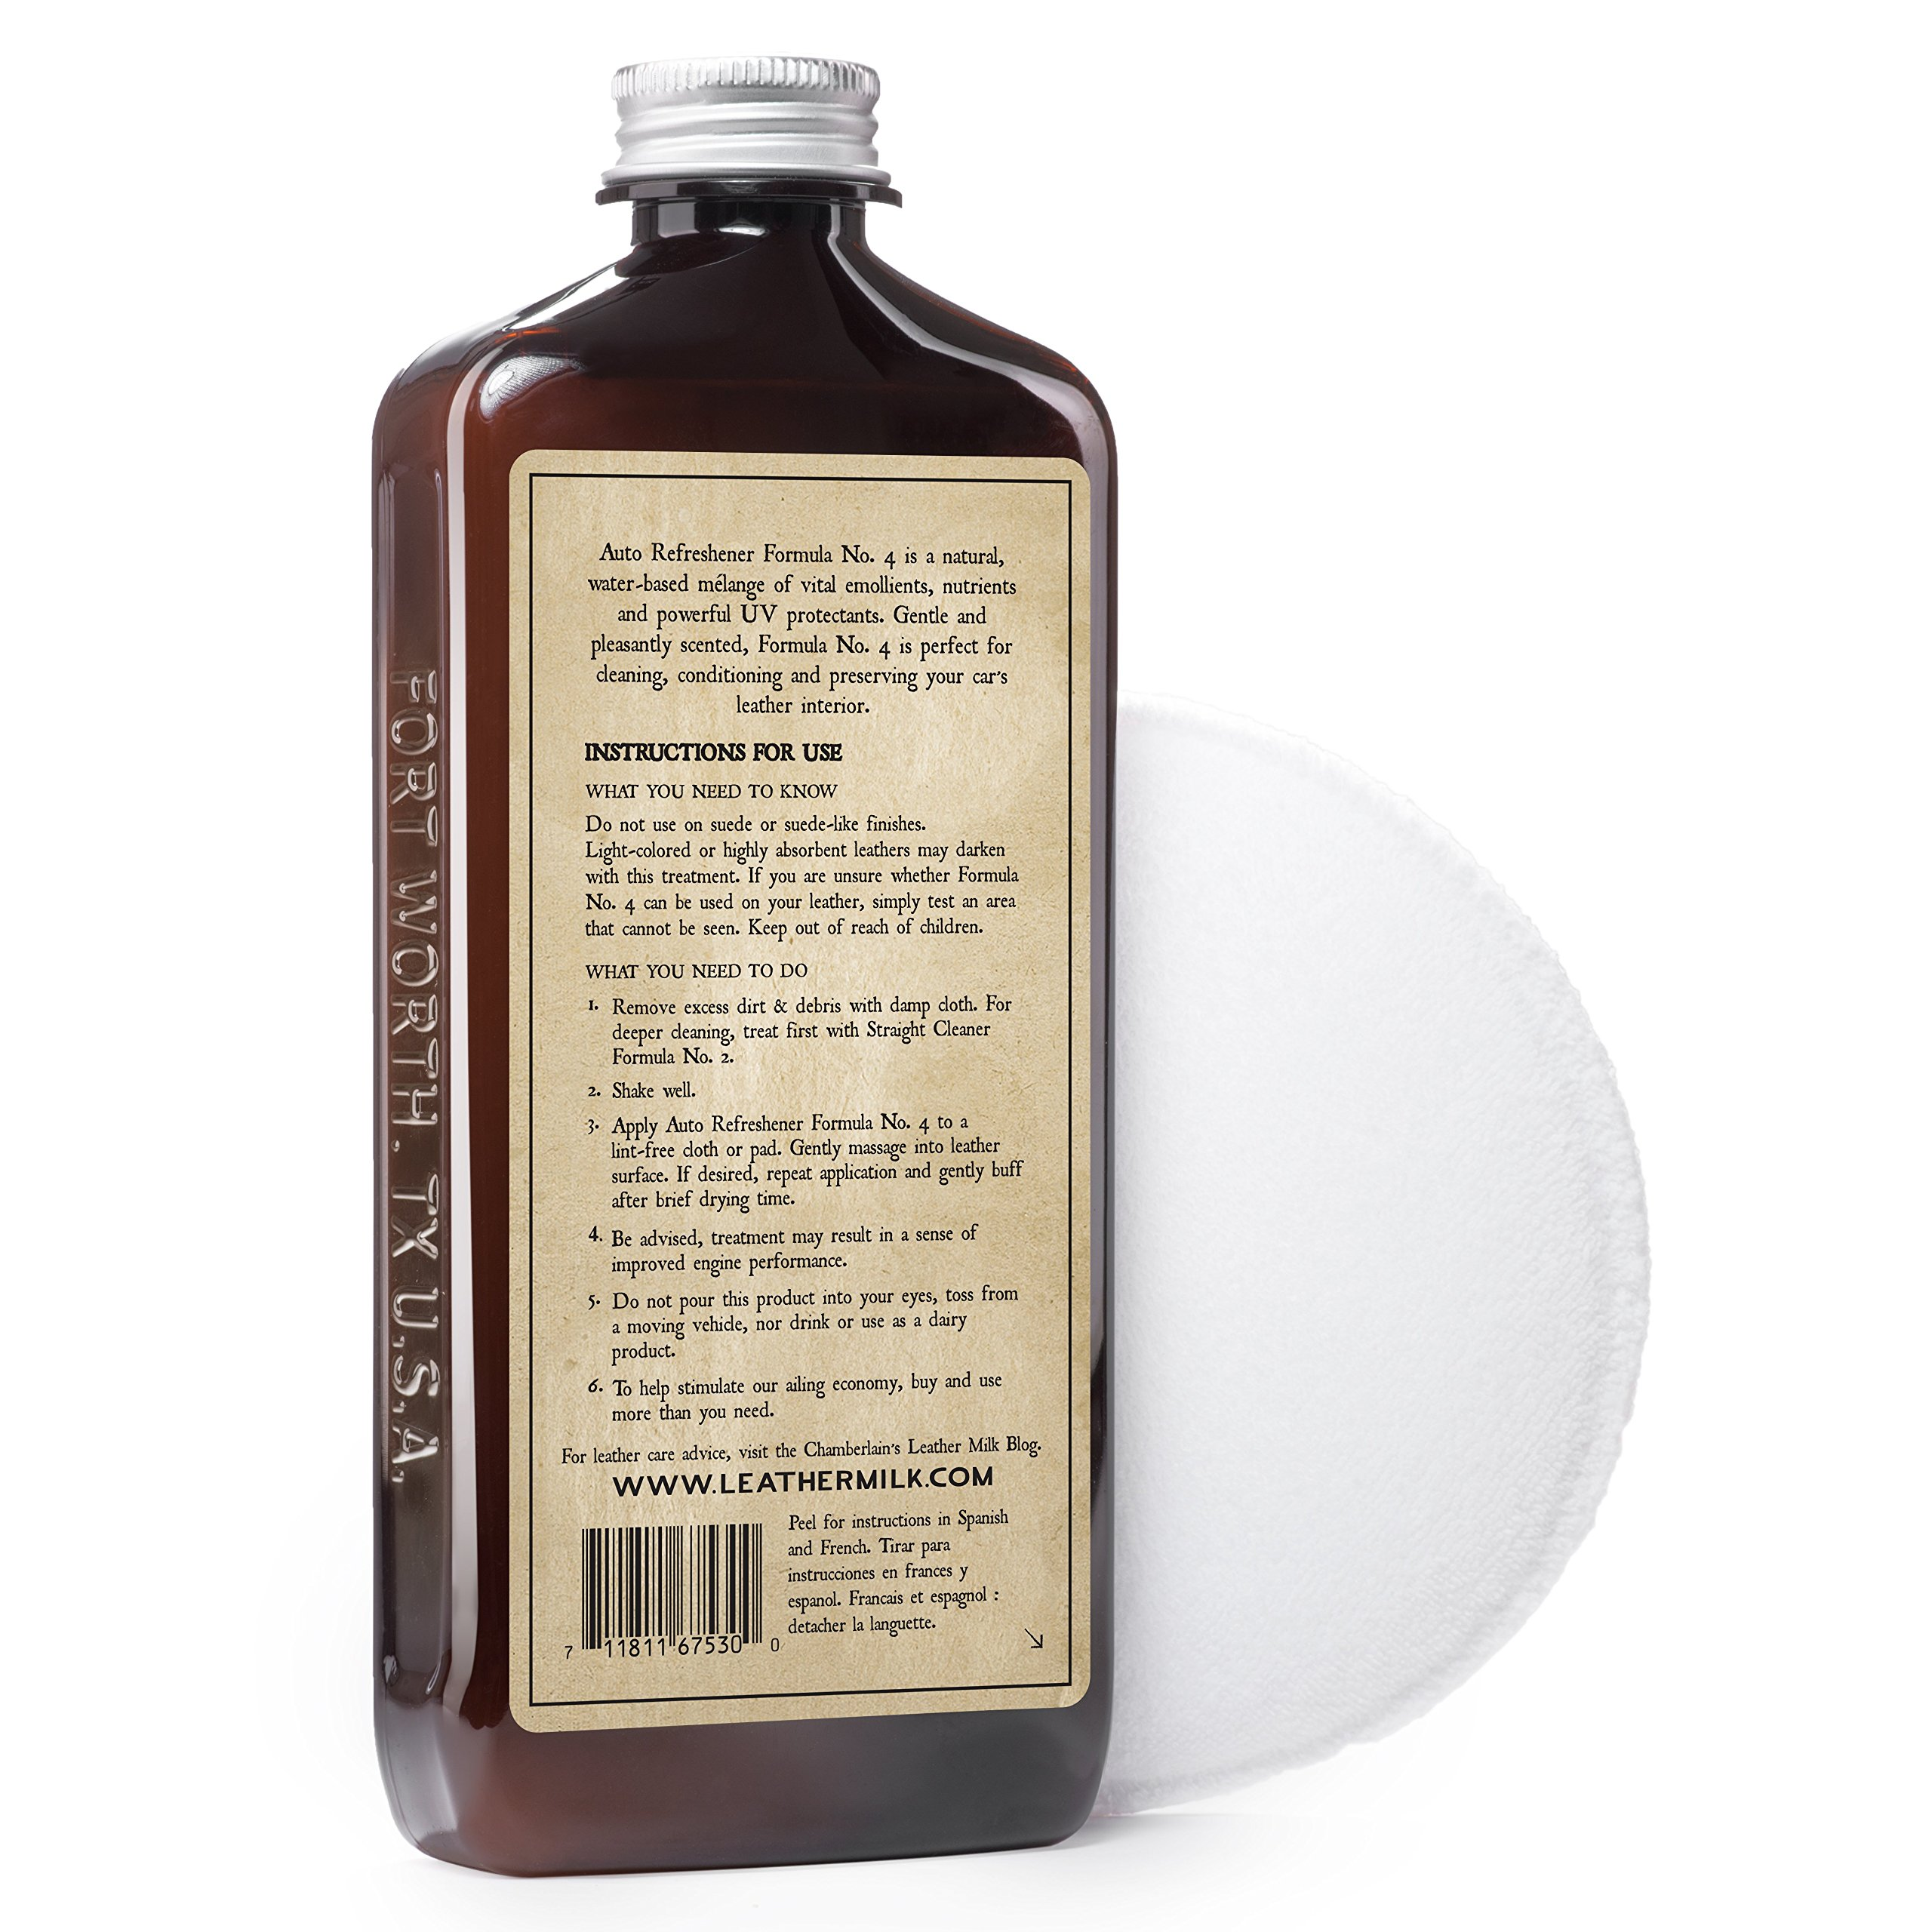 Leather Milk Auto Leather Cleaner & Conditioner Kit (2 Formula Car Detailing Set) - Straight Cleaner No. 2 + Auto Refreshener No. 4 - All Natural, Non-Toxic. Made in USA. Includes 2 Detailing Pads! by Chamberlain's Leather Milk (Image #6)